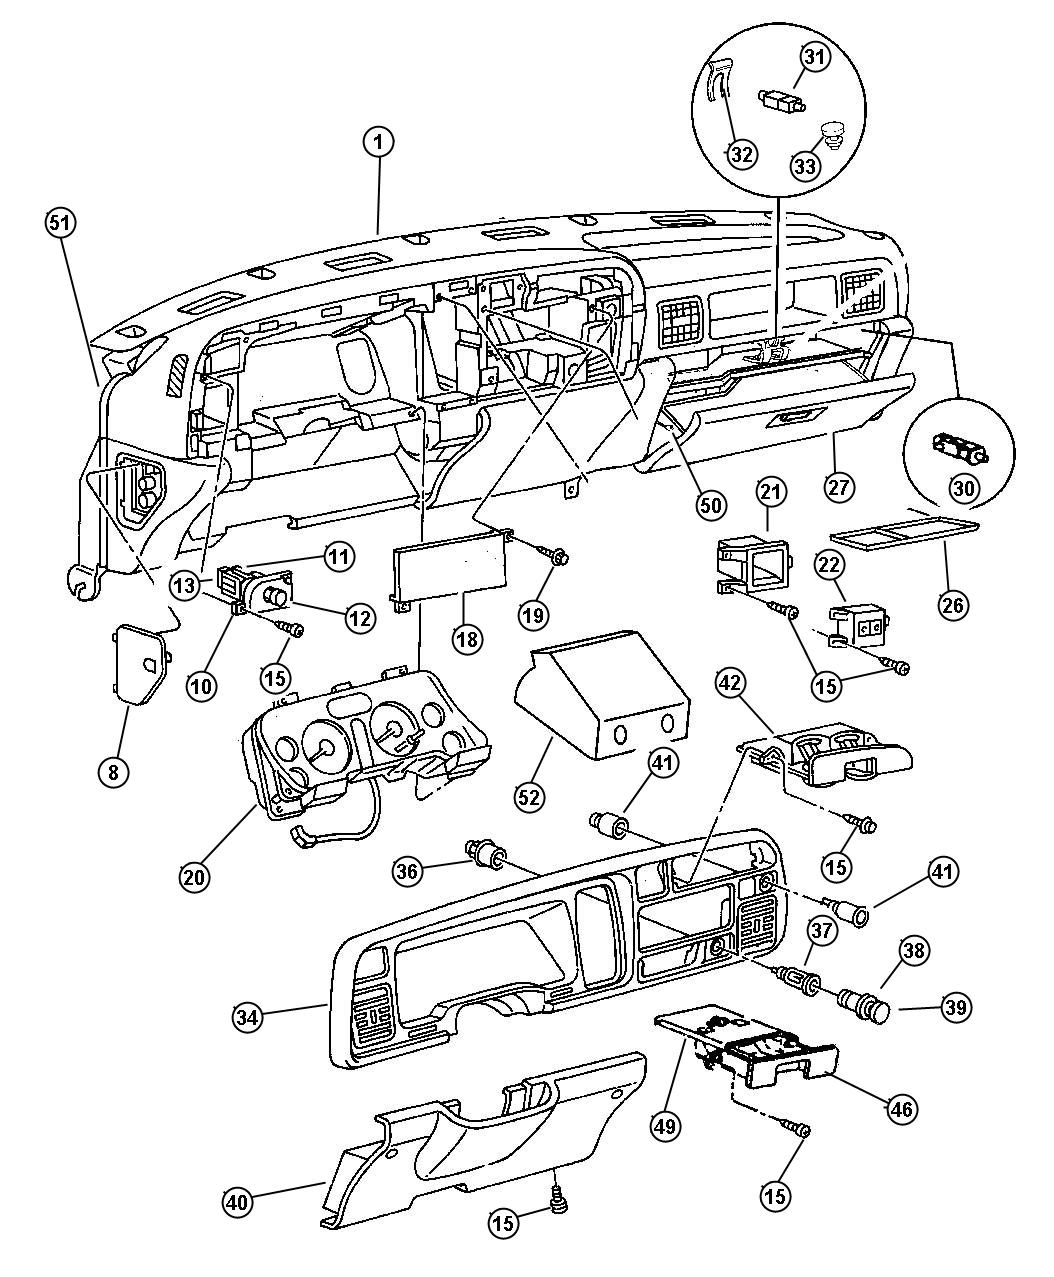 1997 Dodge Ram 1500 Alternator Wiring Diagram from www.factorychryslerparts.com